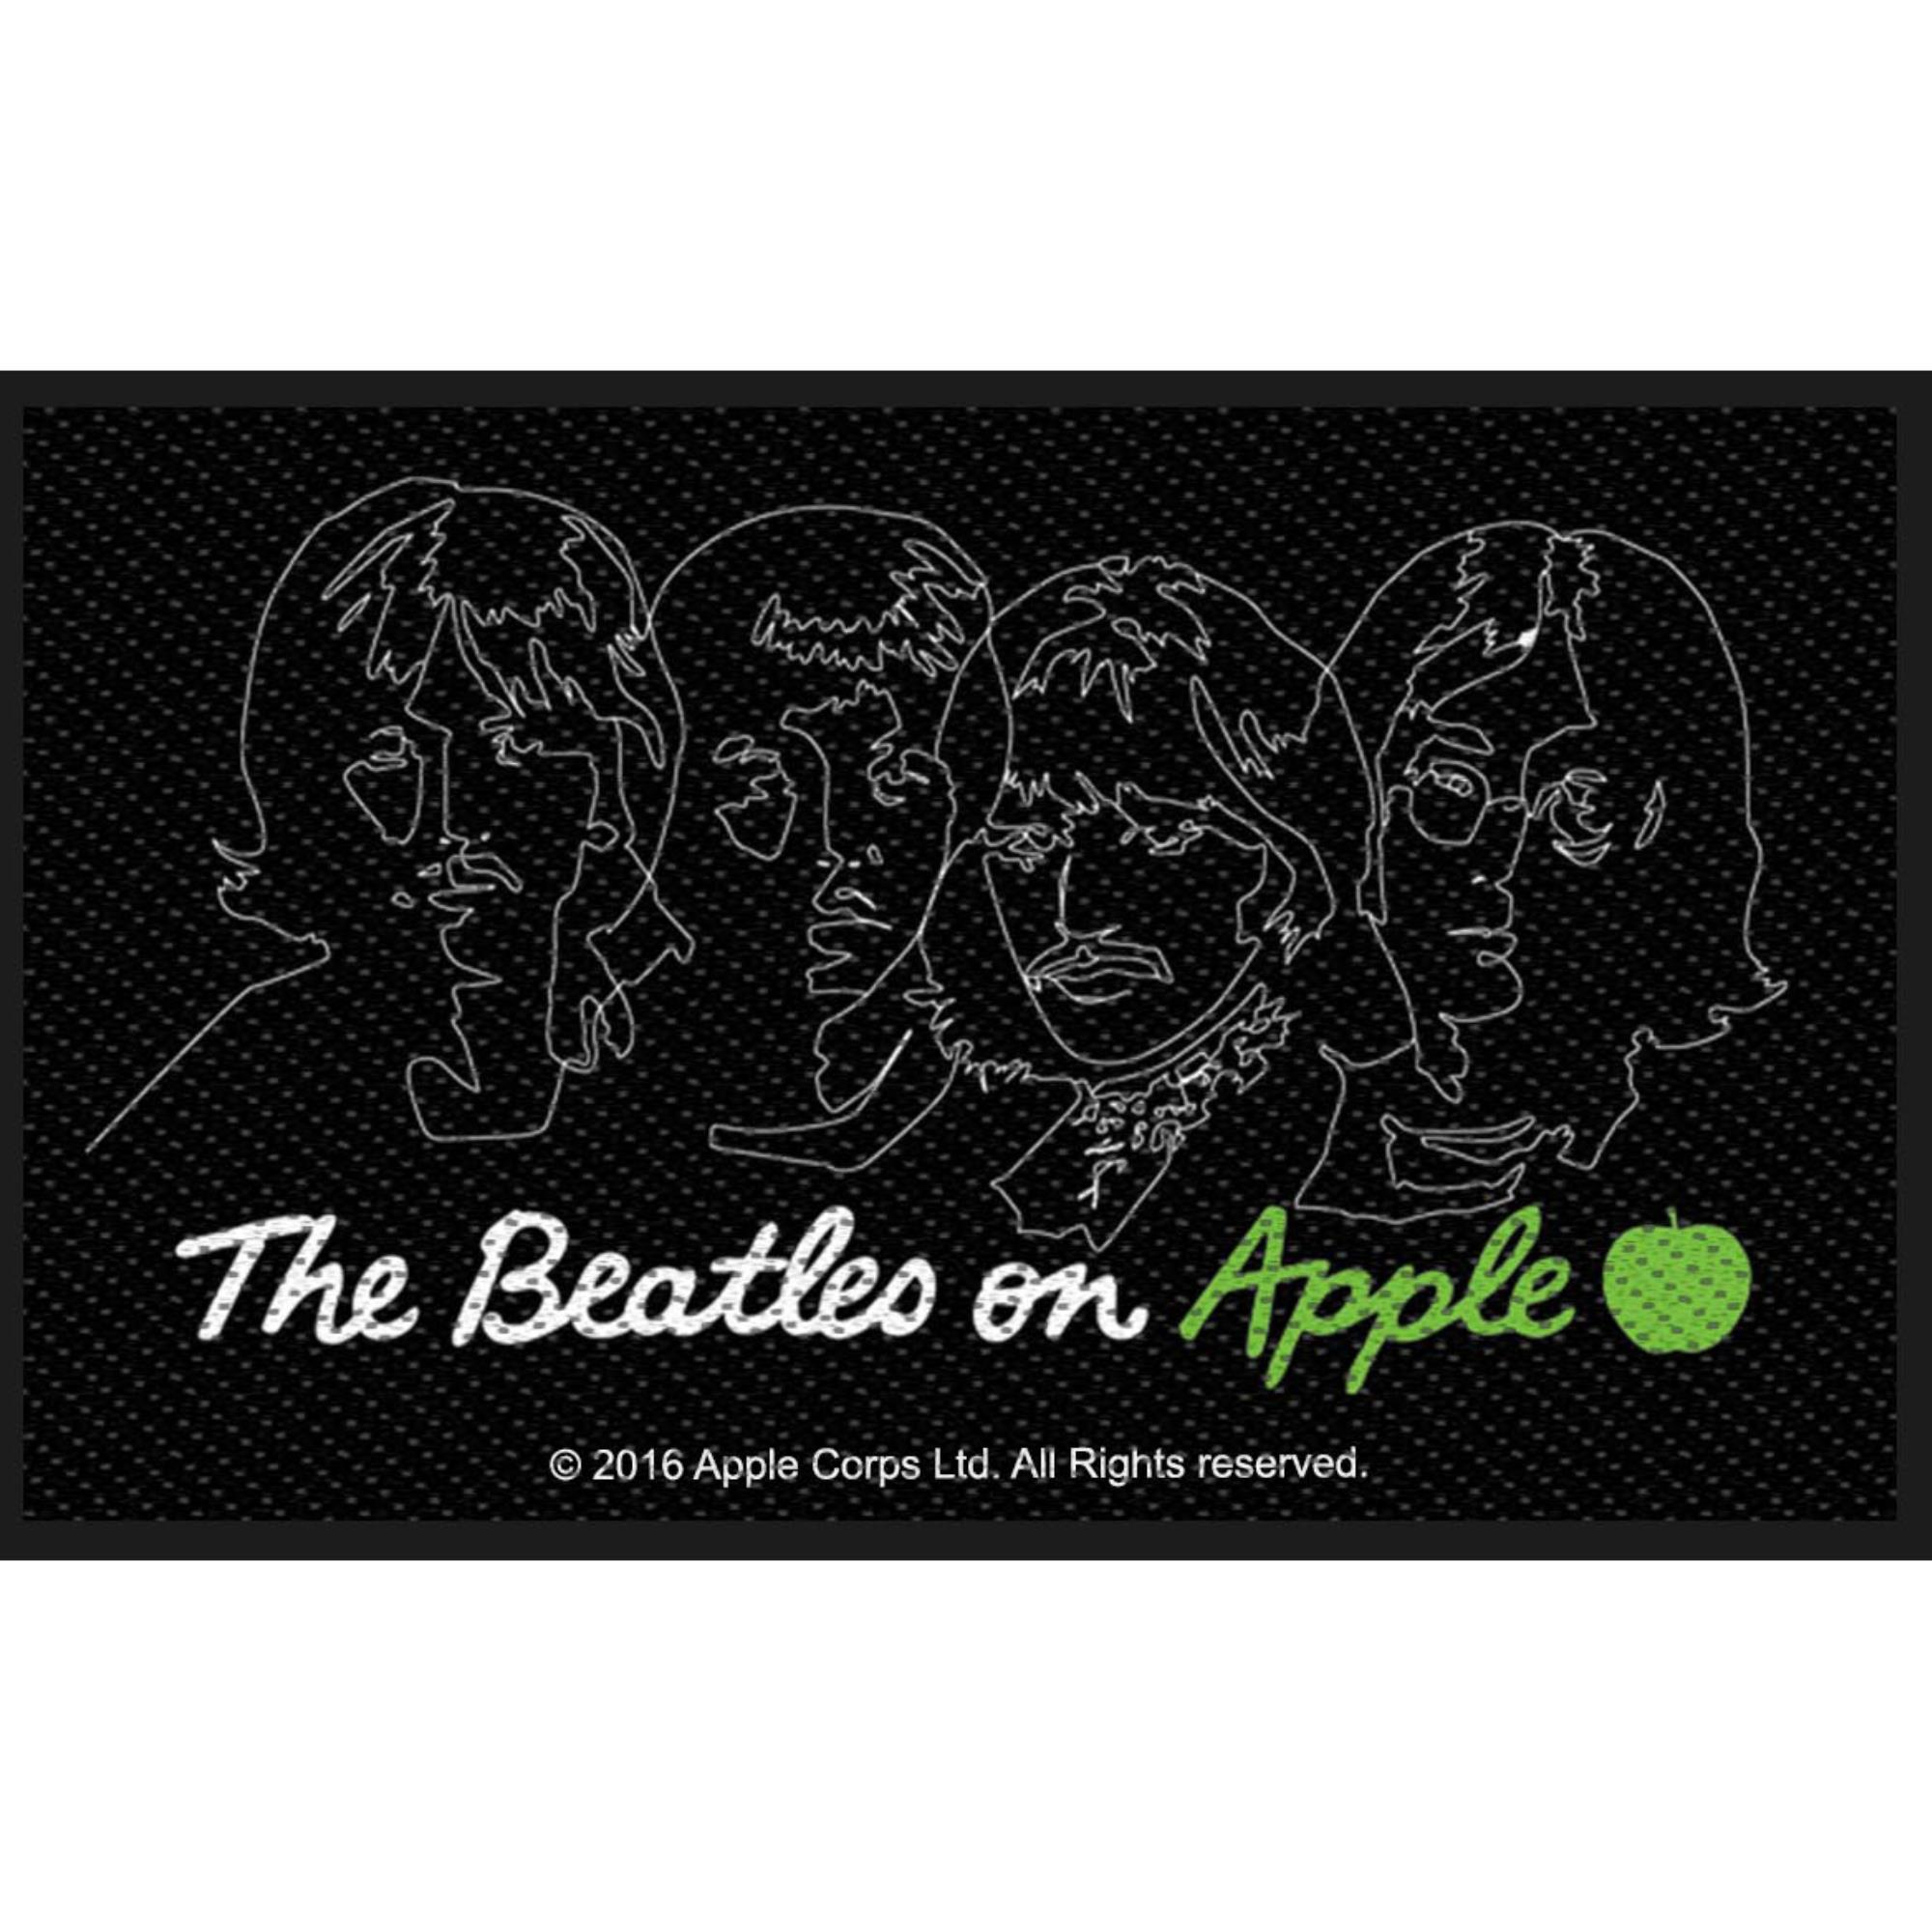 The Beatles On Apple Patch